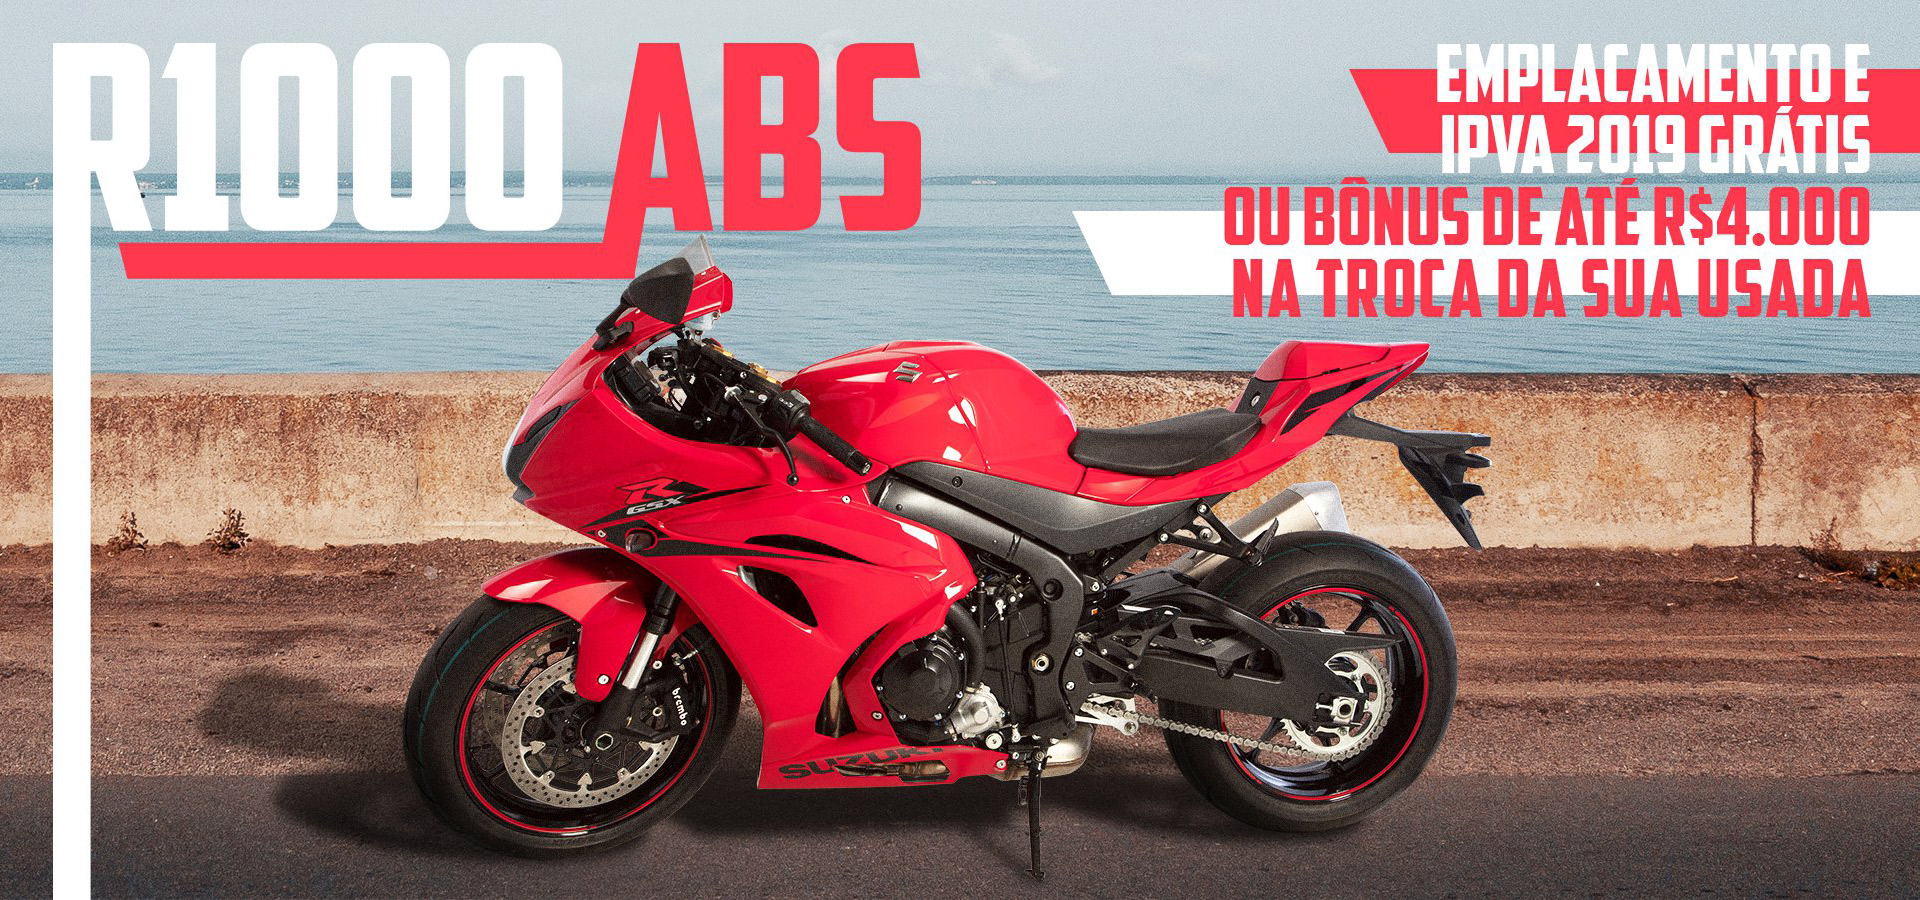 banner r1000 abs